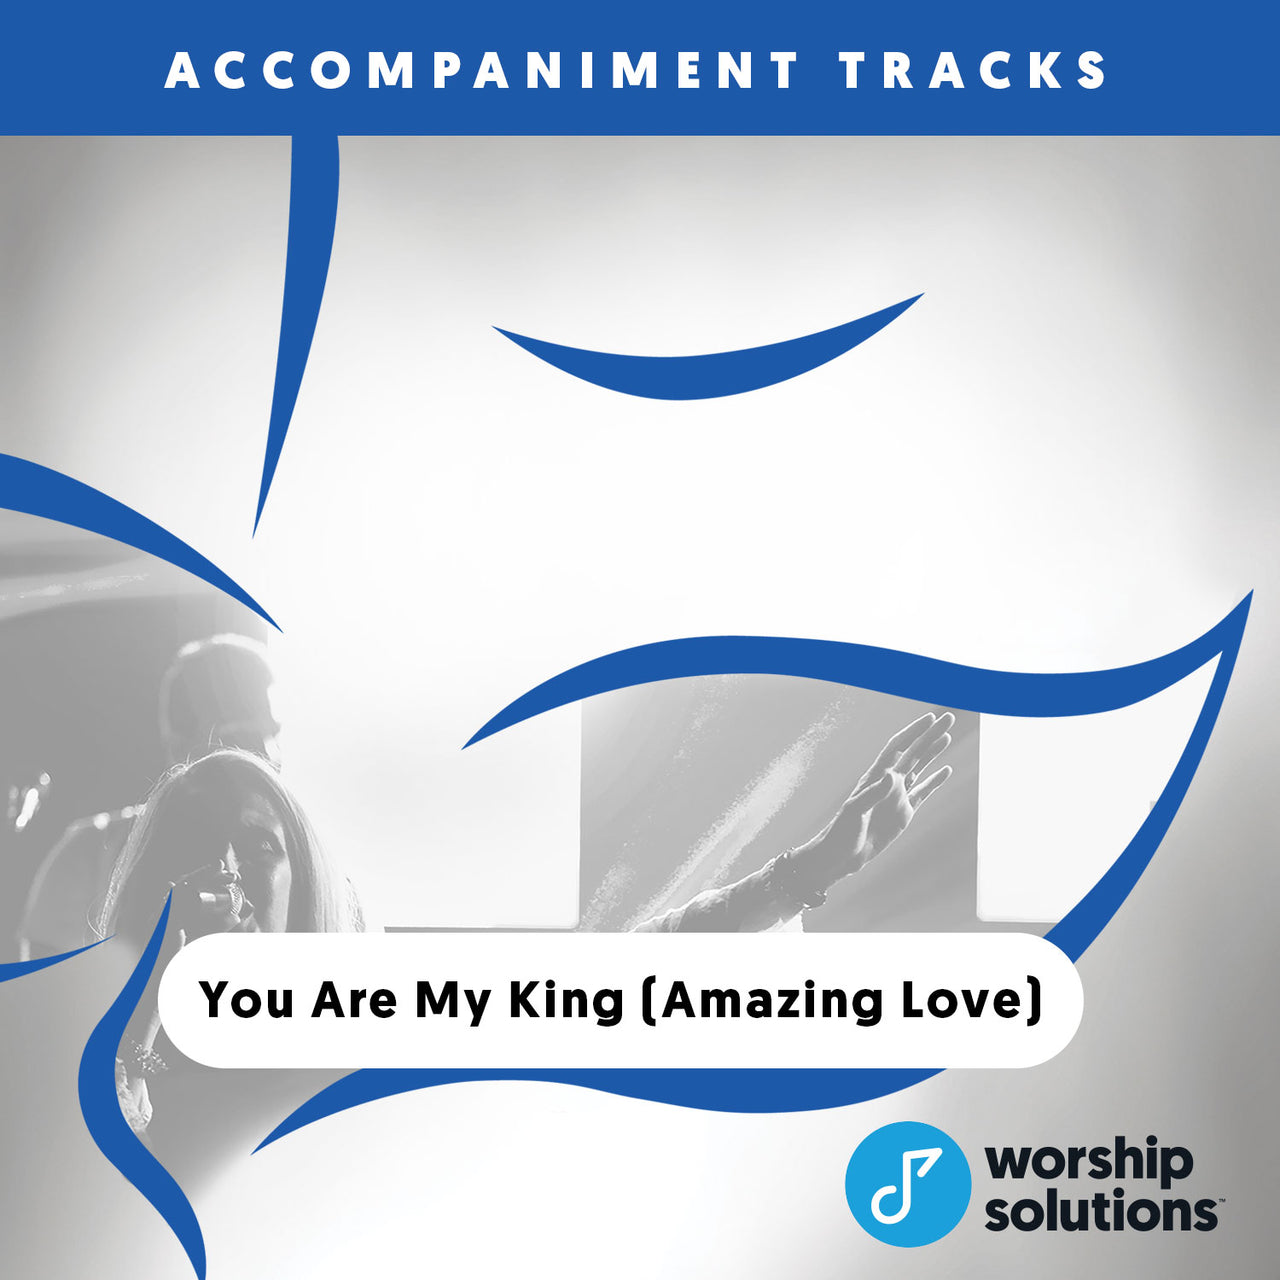 You Are My King (Amazing Love), Accompaniment Track